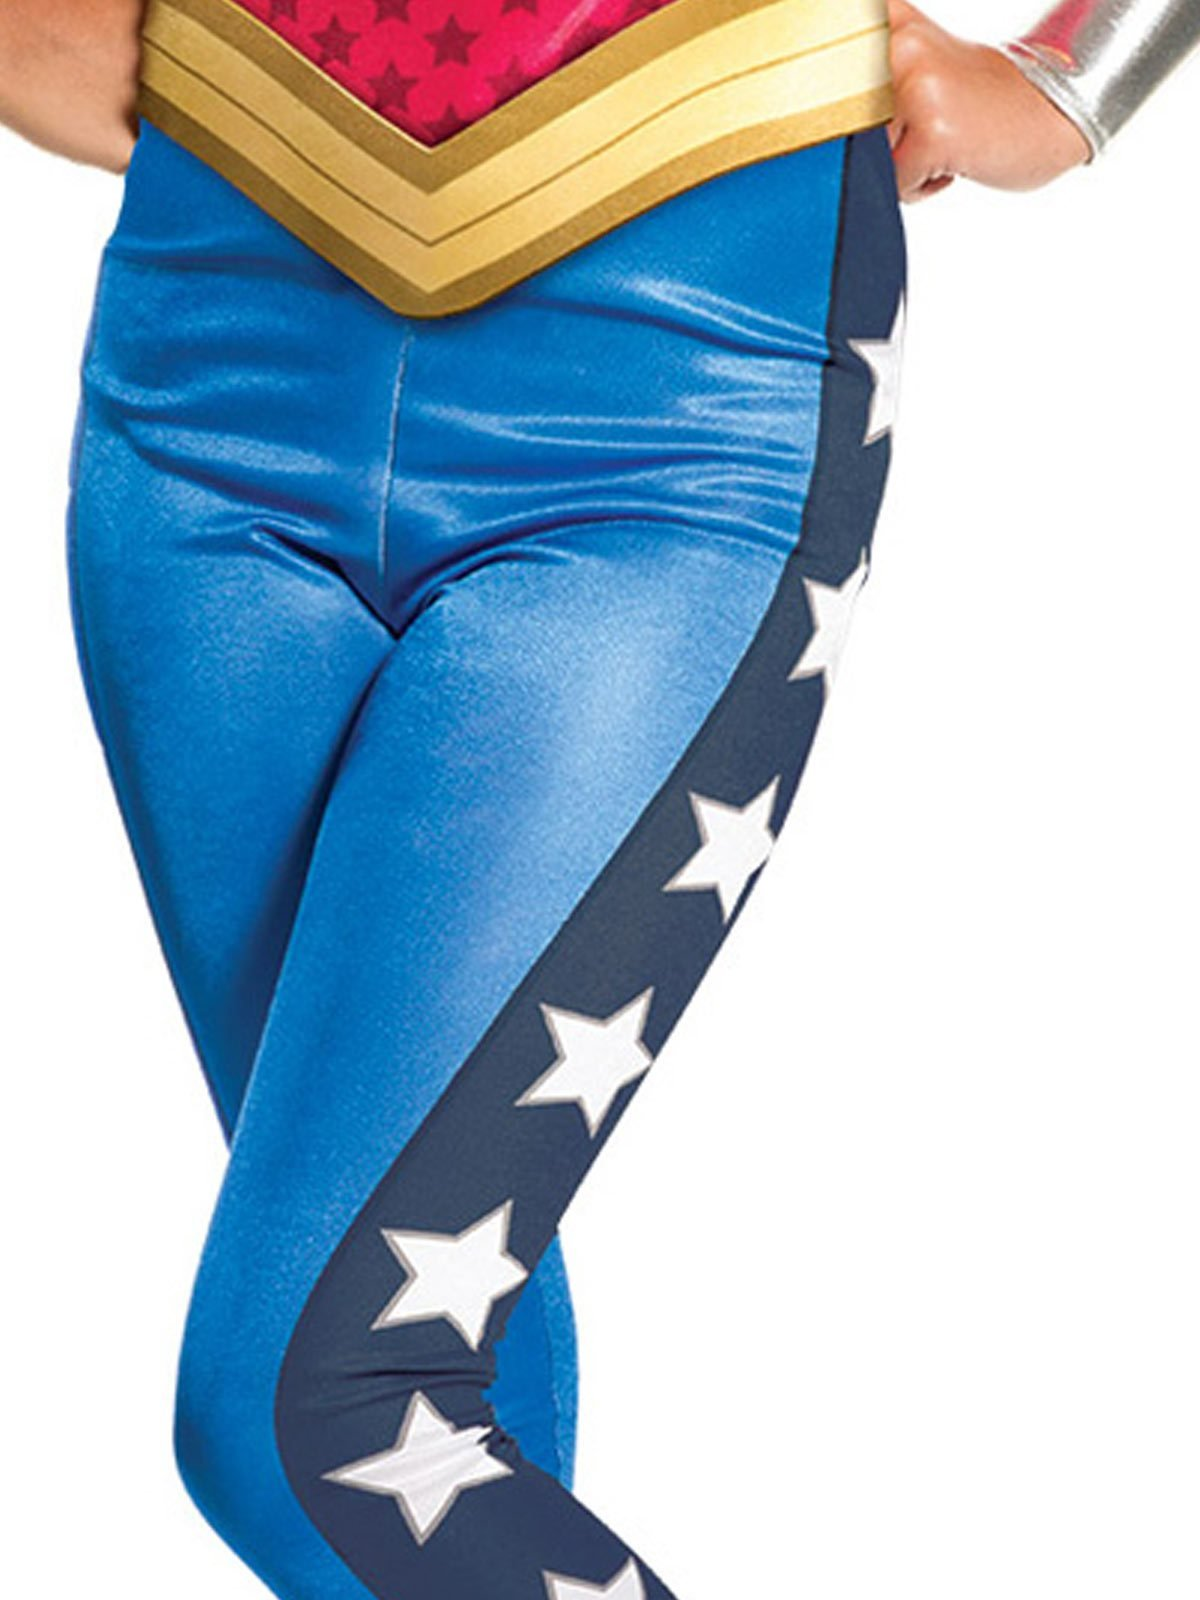 Wonder Woman DC Girl Costume Child - Buy Online Only - The Costume Company | Australian & Family Owned